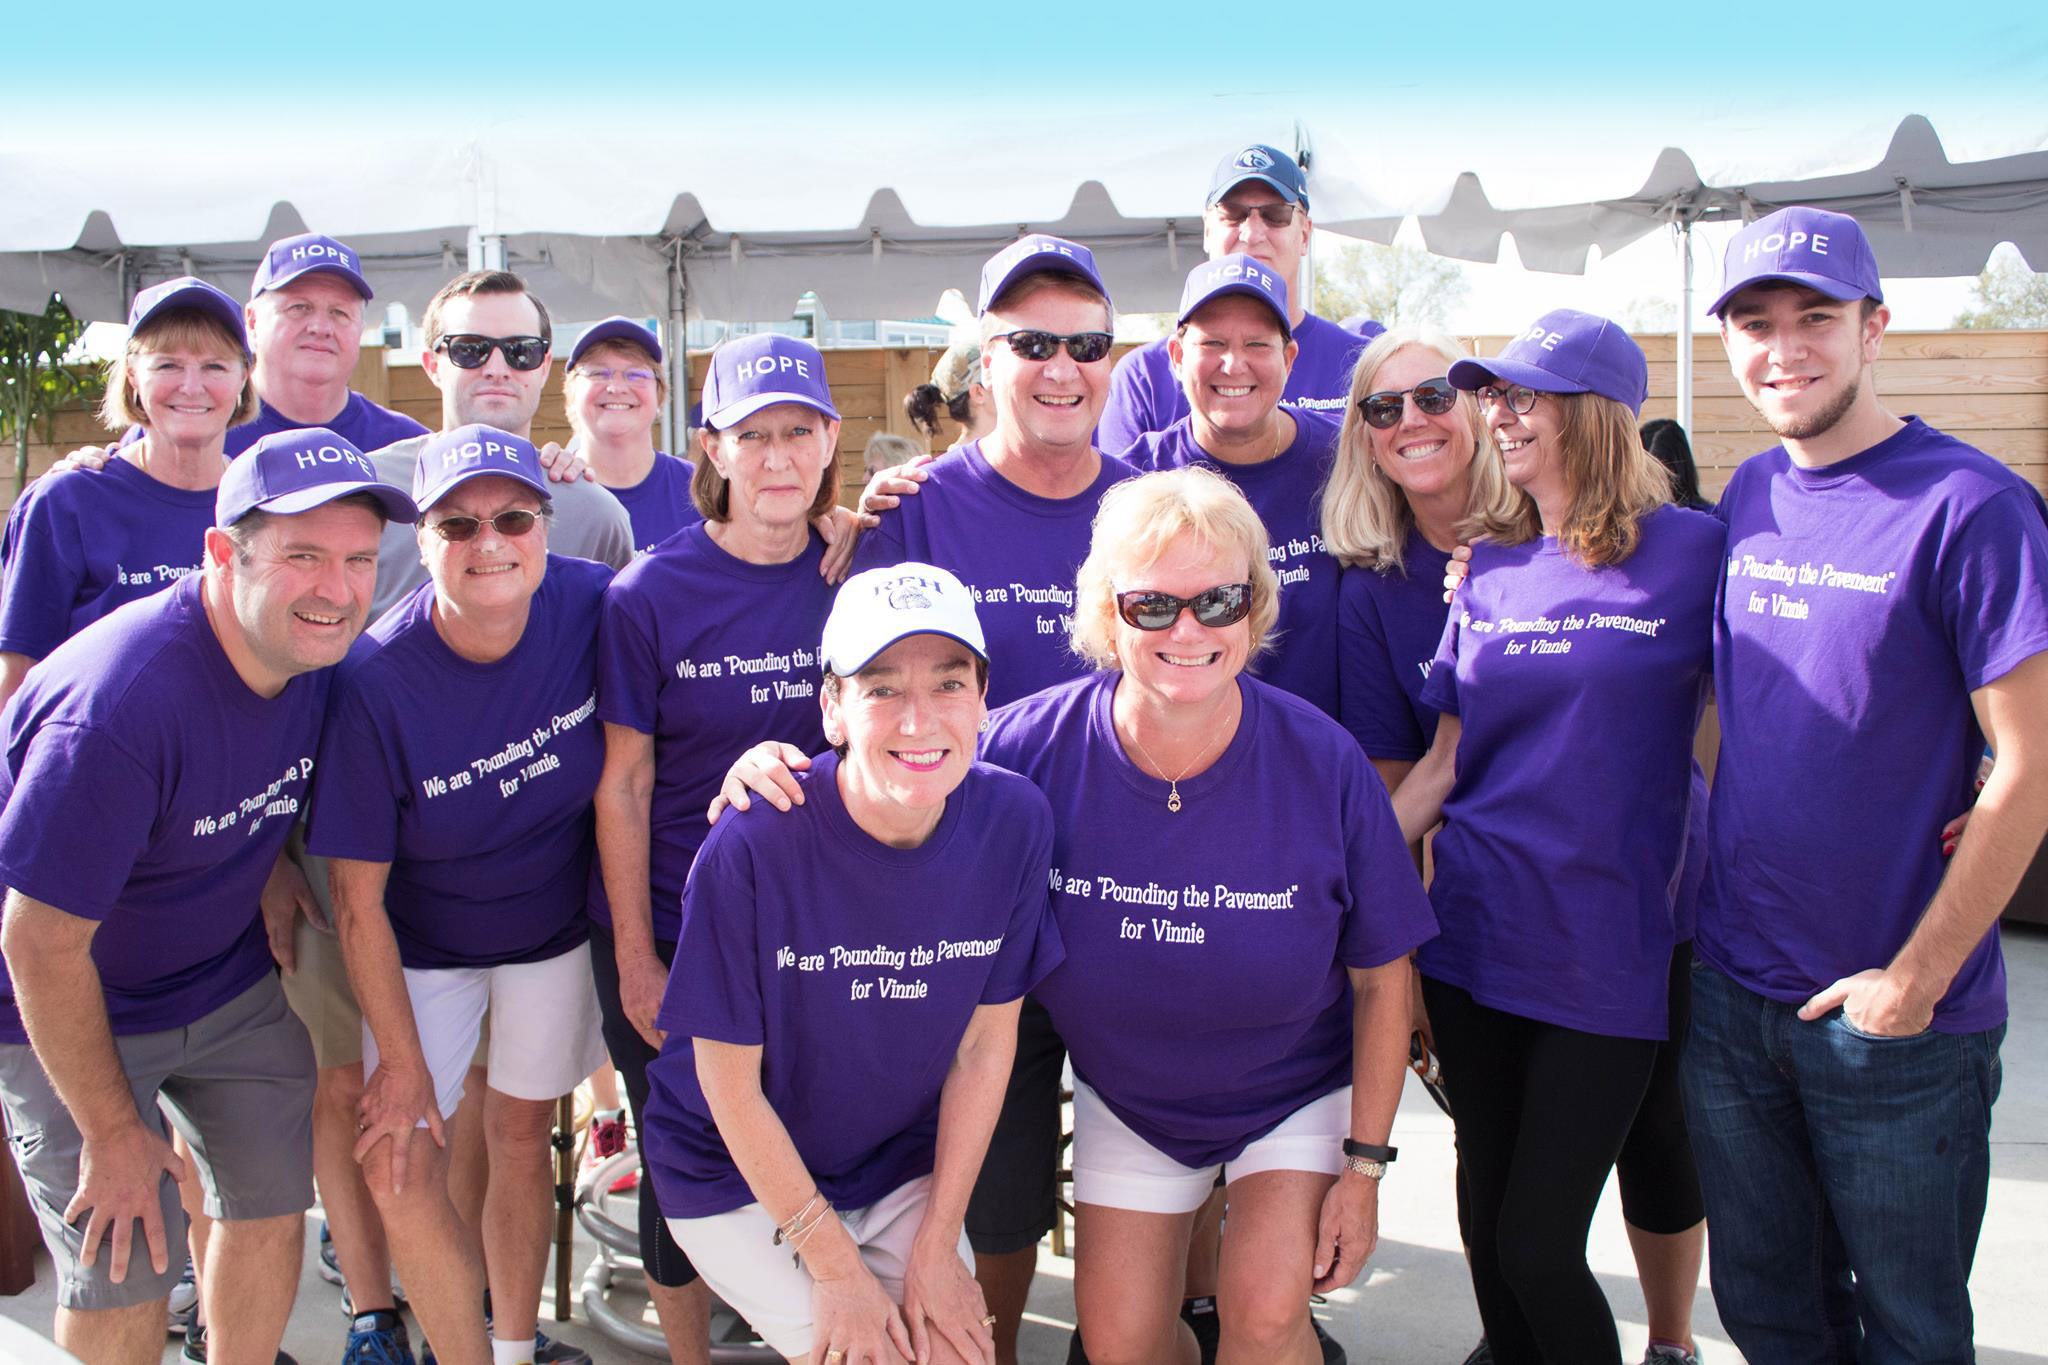 Why we Pound the Pavement - Pancreatic cancer is the third leading cause of cancer-related deaths in the United States and is the deadliest major cancer, with a five-year survival rate of just 9 percent, according to the Pancreatic Cancer Action Network. In 2019, it is predicted that more than 55,000 Americans will be diagnosed with pancreatic cancer.